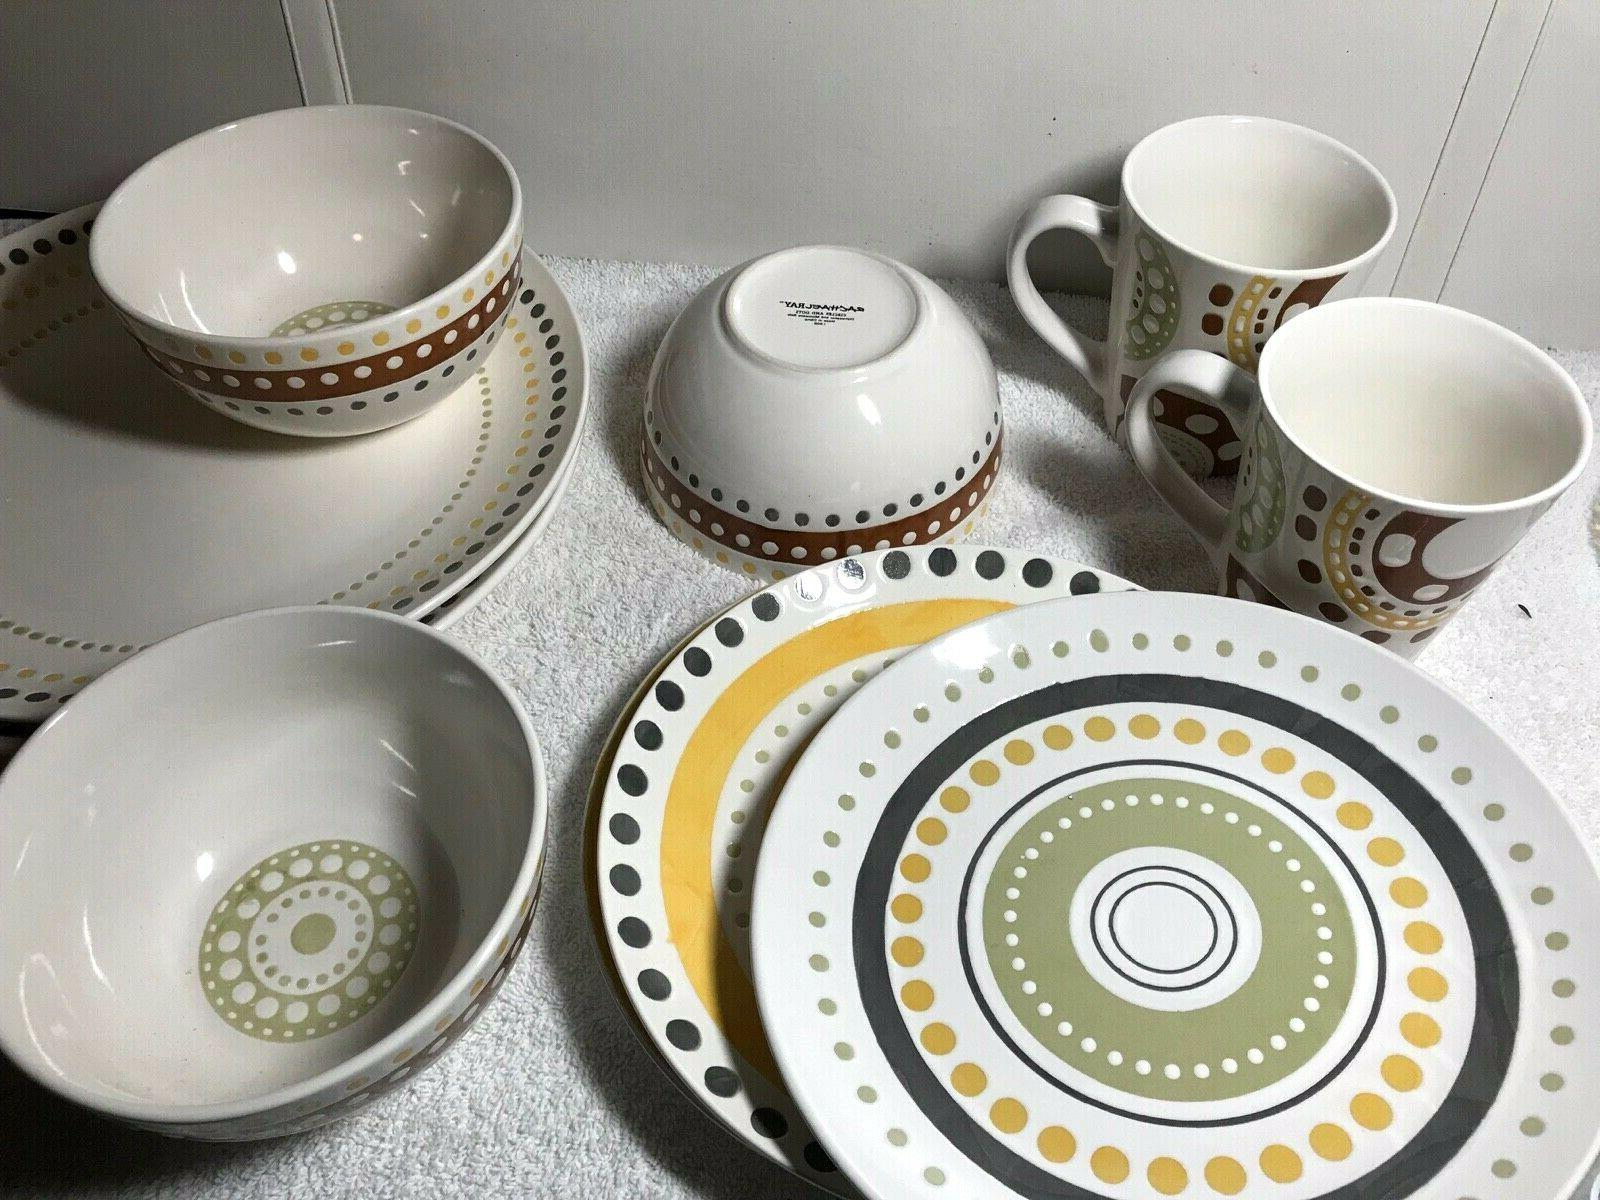 10 pieces of circles and dots dinnerware